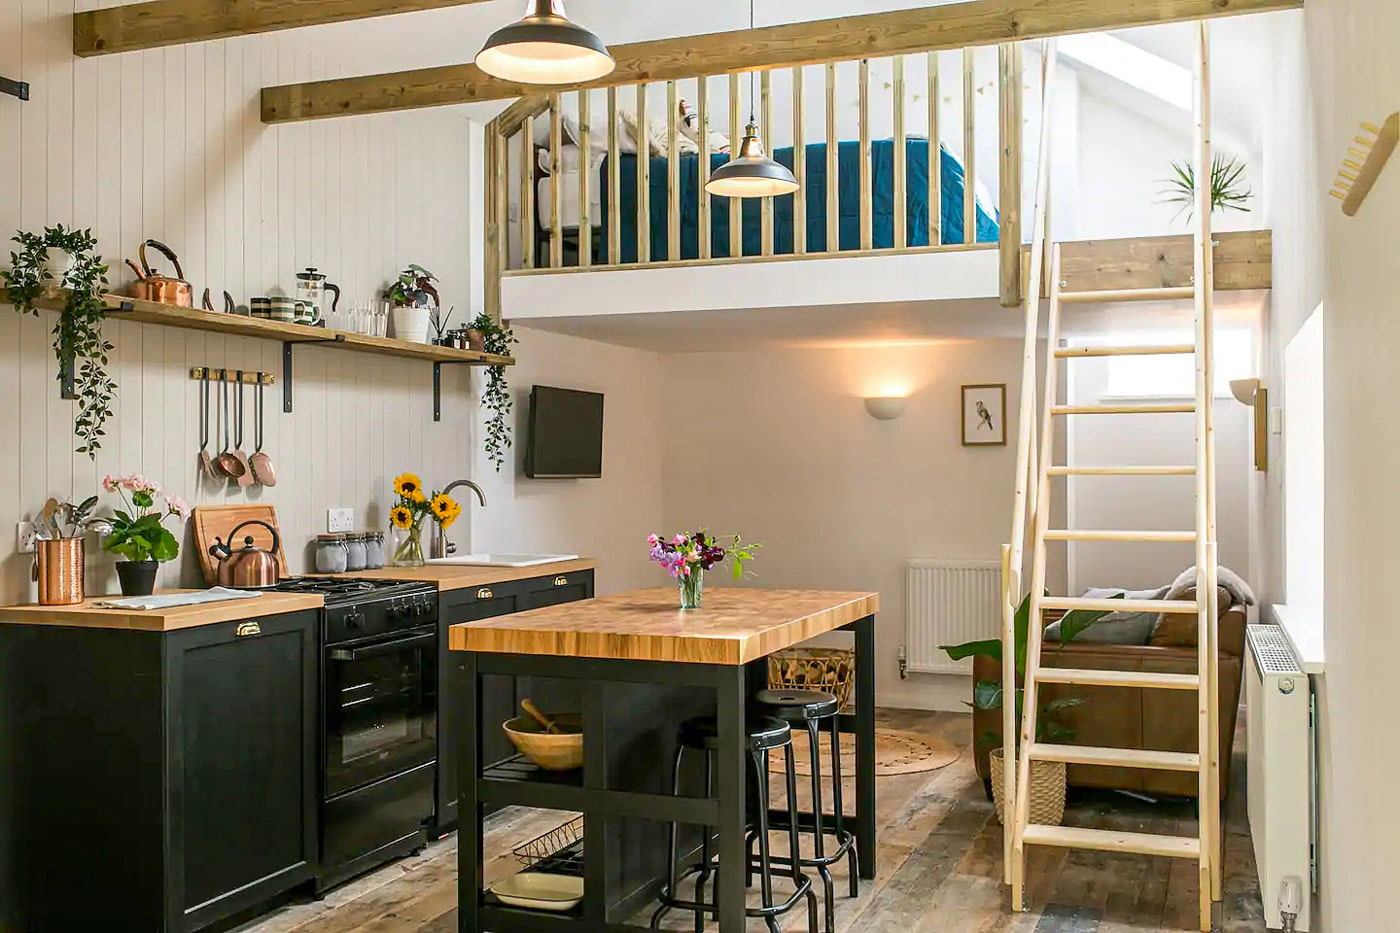 Converted dairy shed in Cornwall